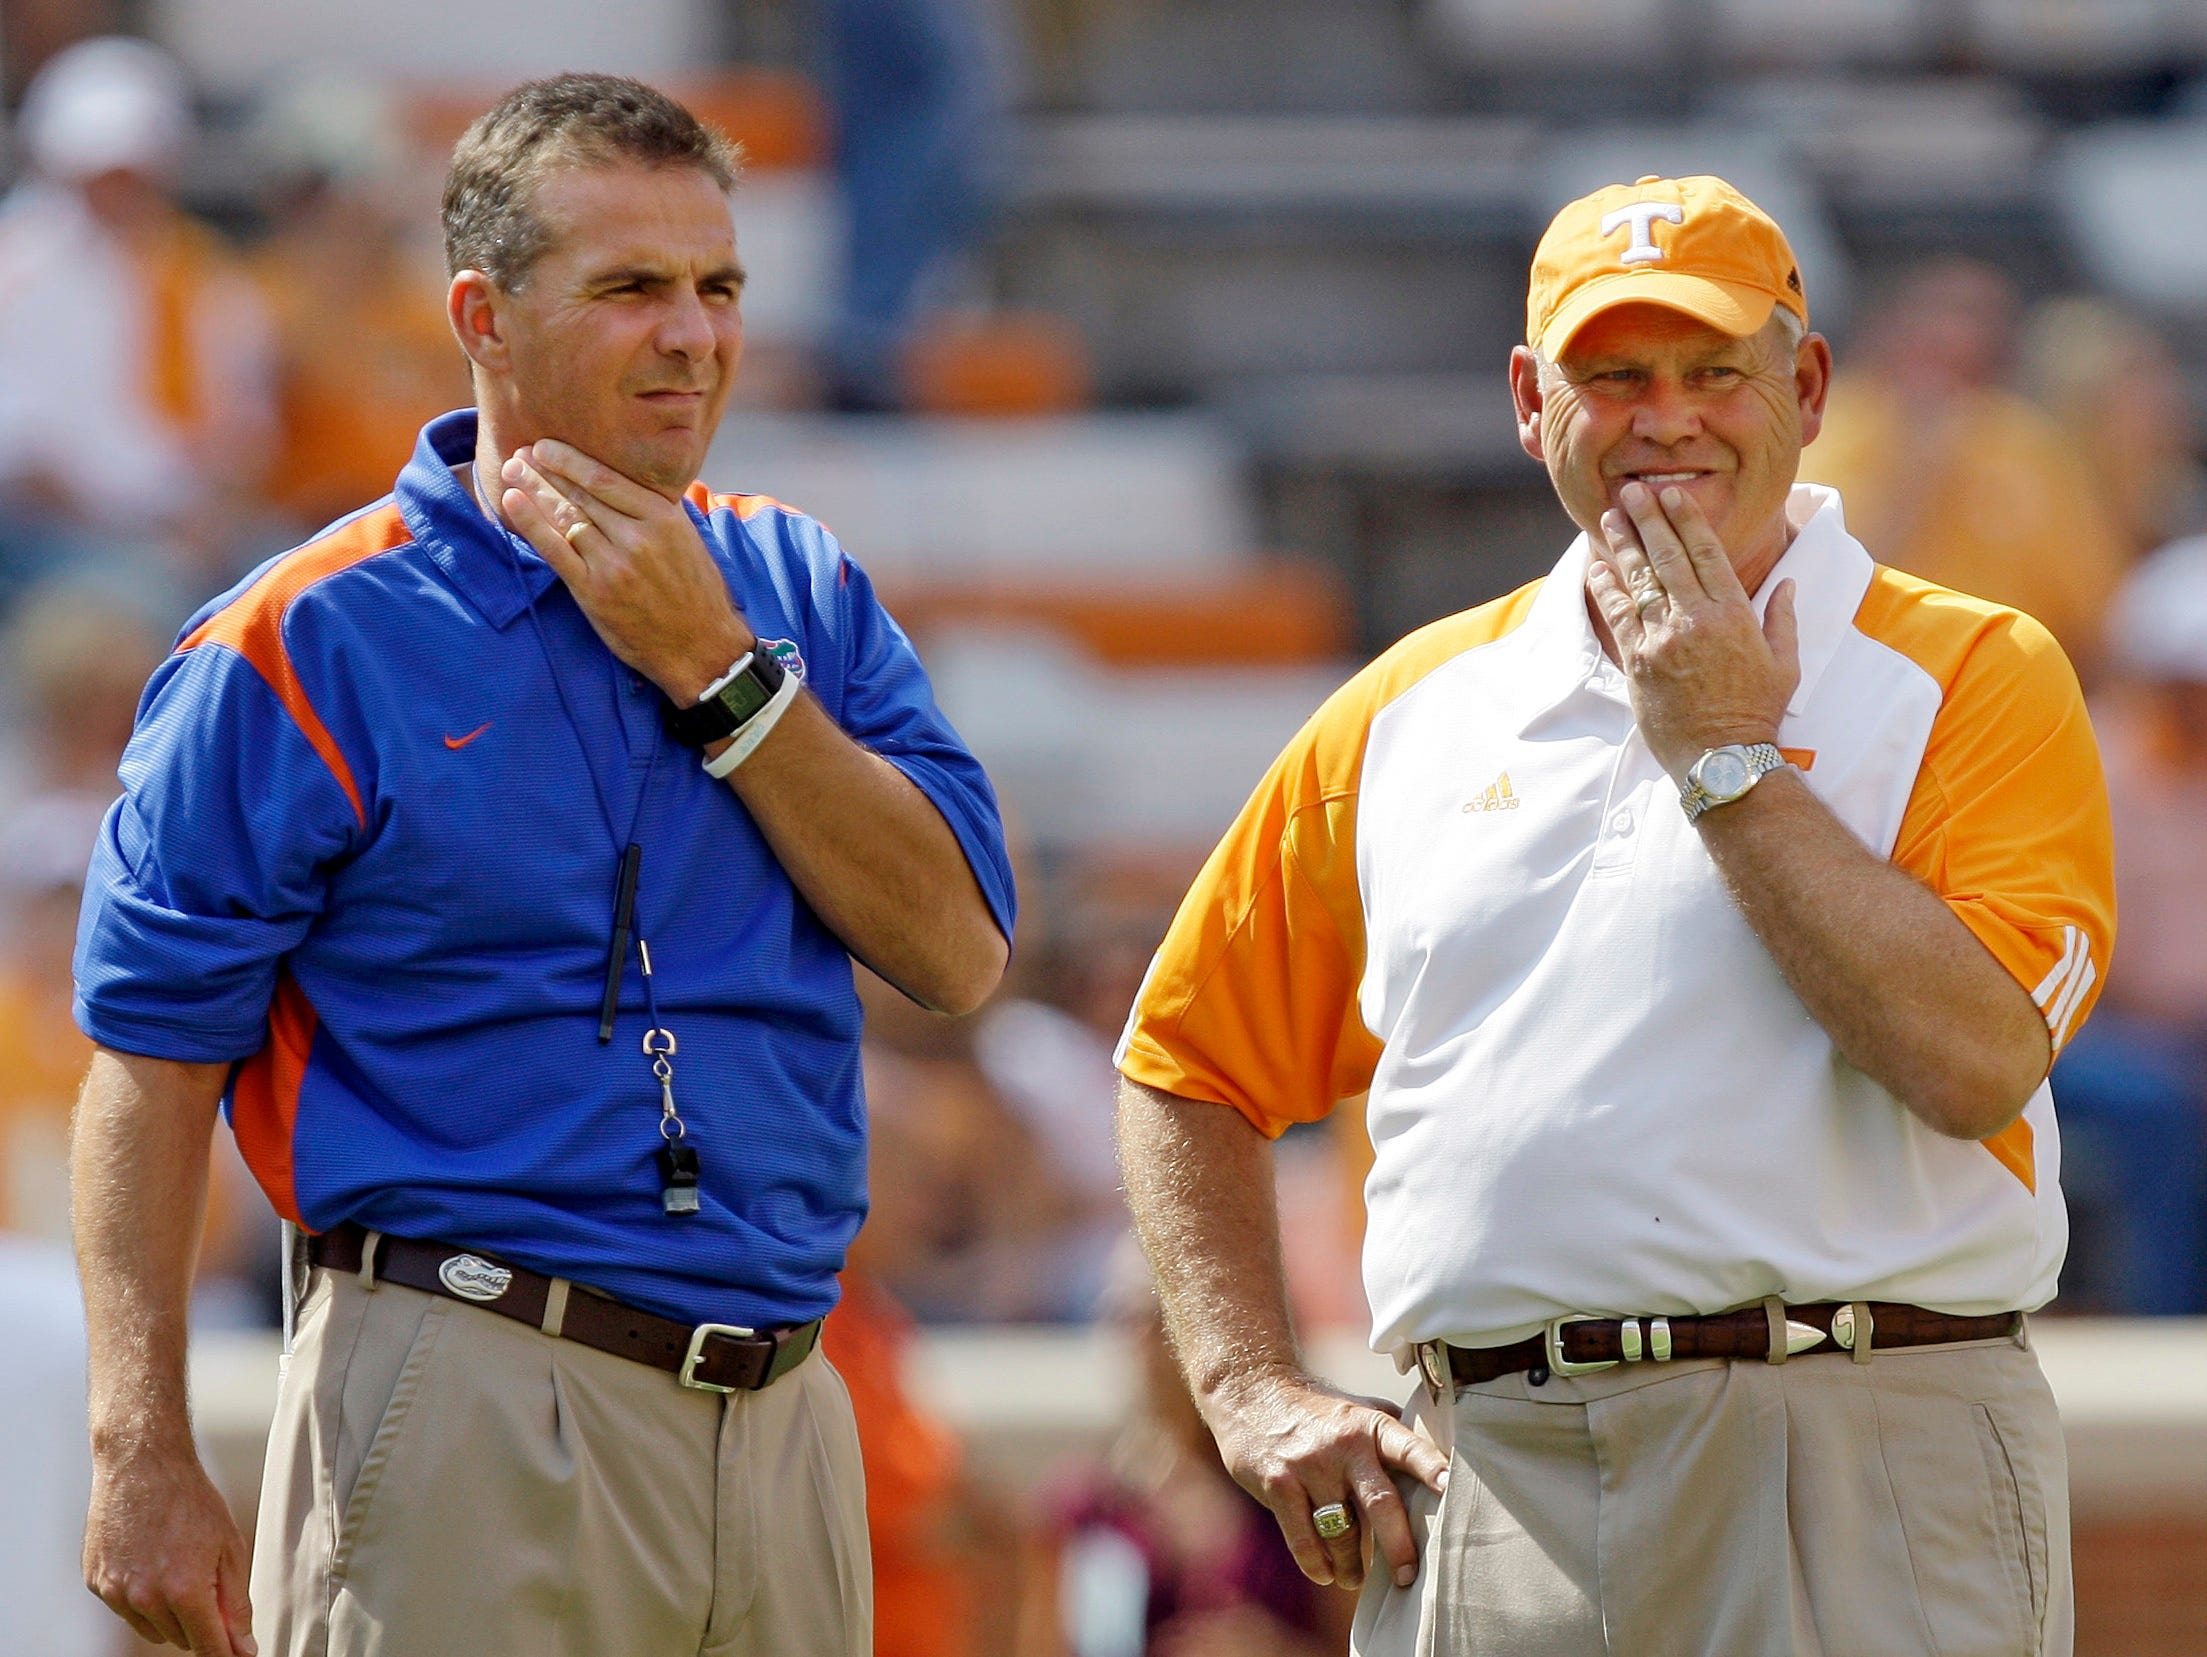 Florida head coach Urban Meyer, left, and Tennessee head coach Phillip Fulmer watch their teams warm up before the start of their NCAA college football game in Knoxville, Tenn., Saturday, Sept. 20, 2008.